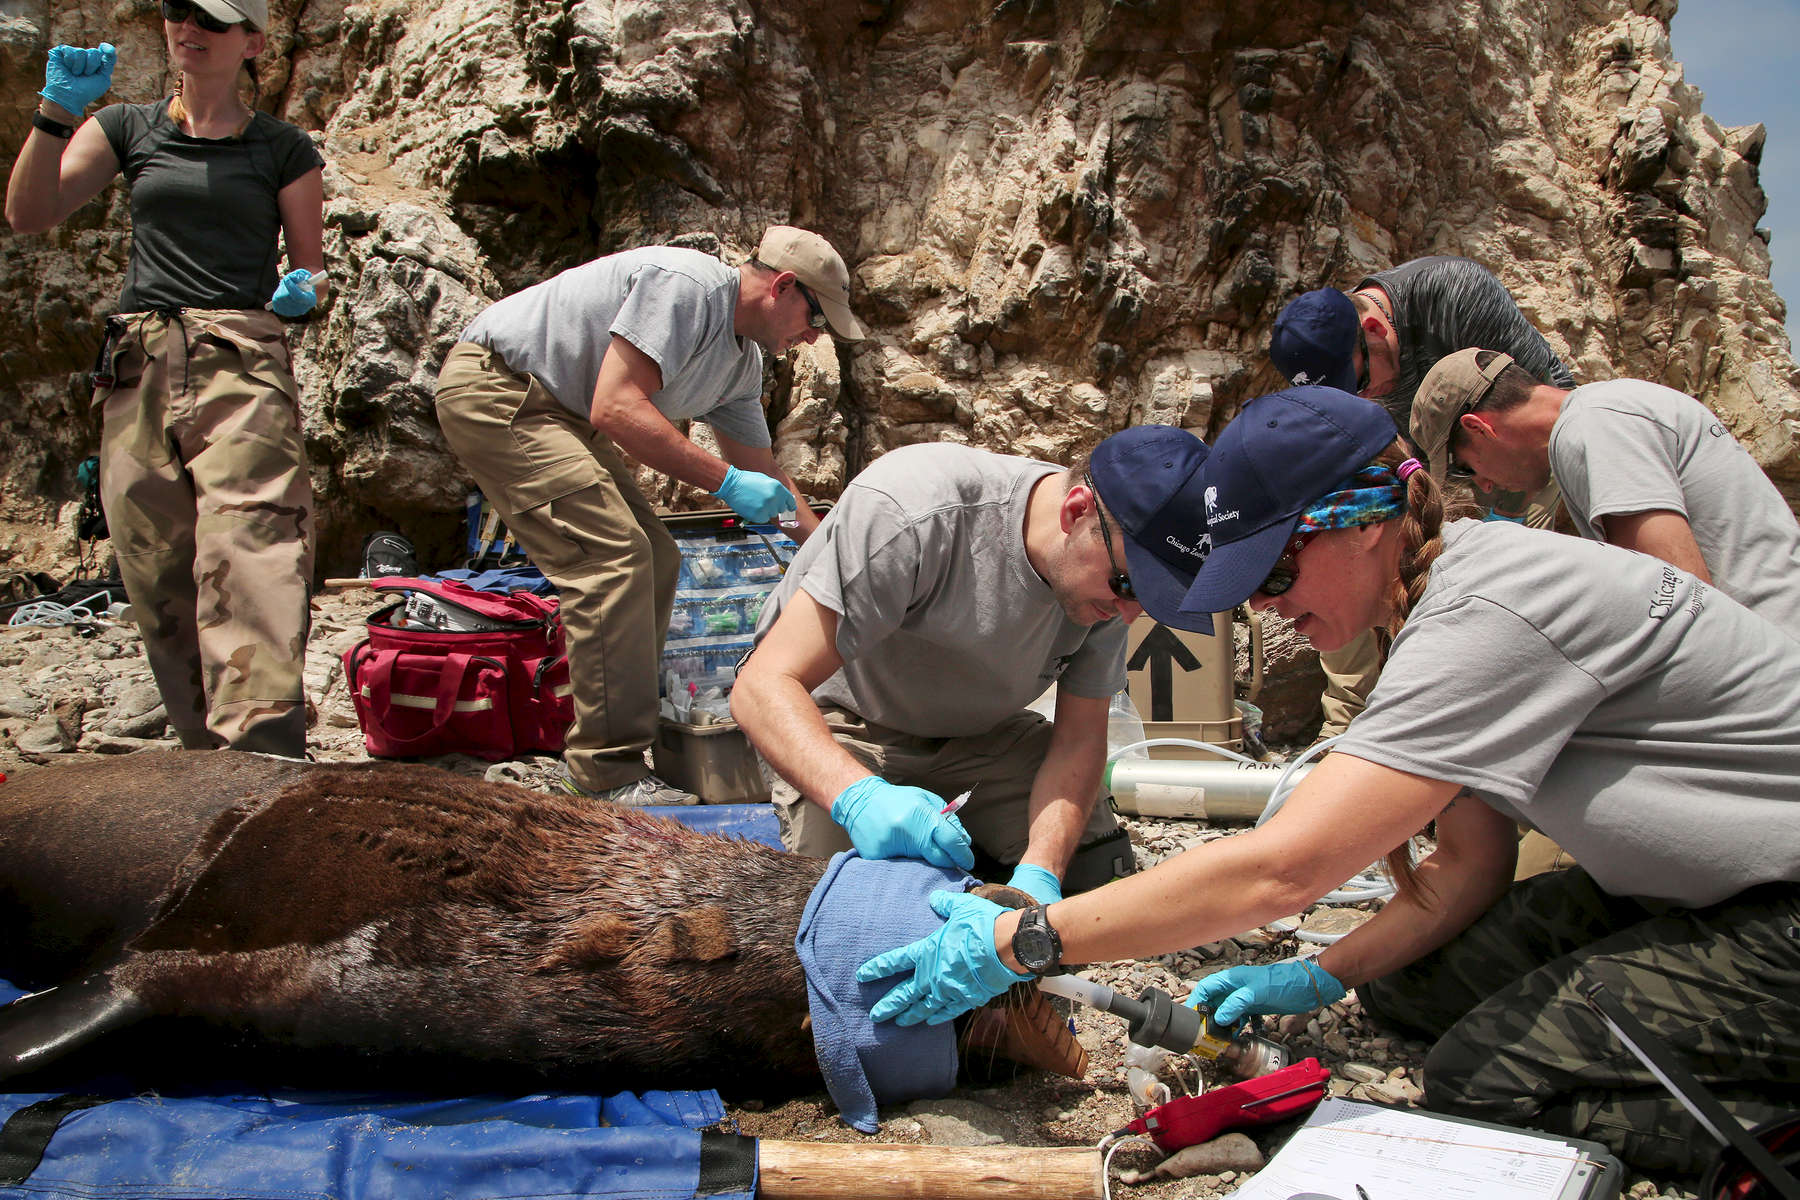 Dr. Adkesson and his team including MaryAnn Duda, a veterinary technician for the Brookfield Zoo, right, worked to collect body samples and measurements on a tranquilized South American sea lion. The team of eight people collected blood, urine, fur, and blubber samples for study and also checked the animal's eyes, heart rate, and weight before measuring and tagging its' fins.